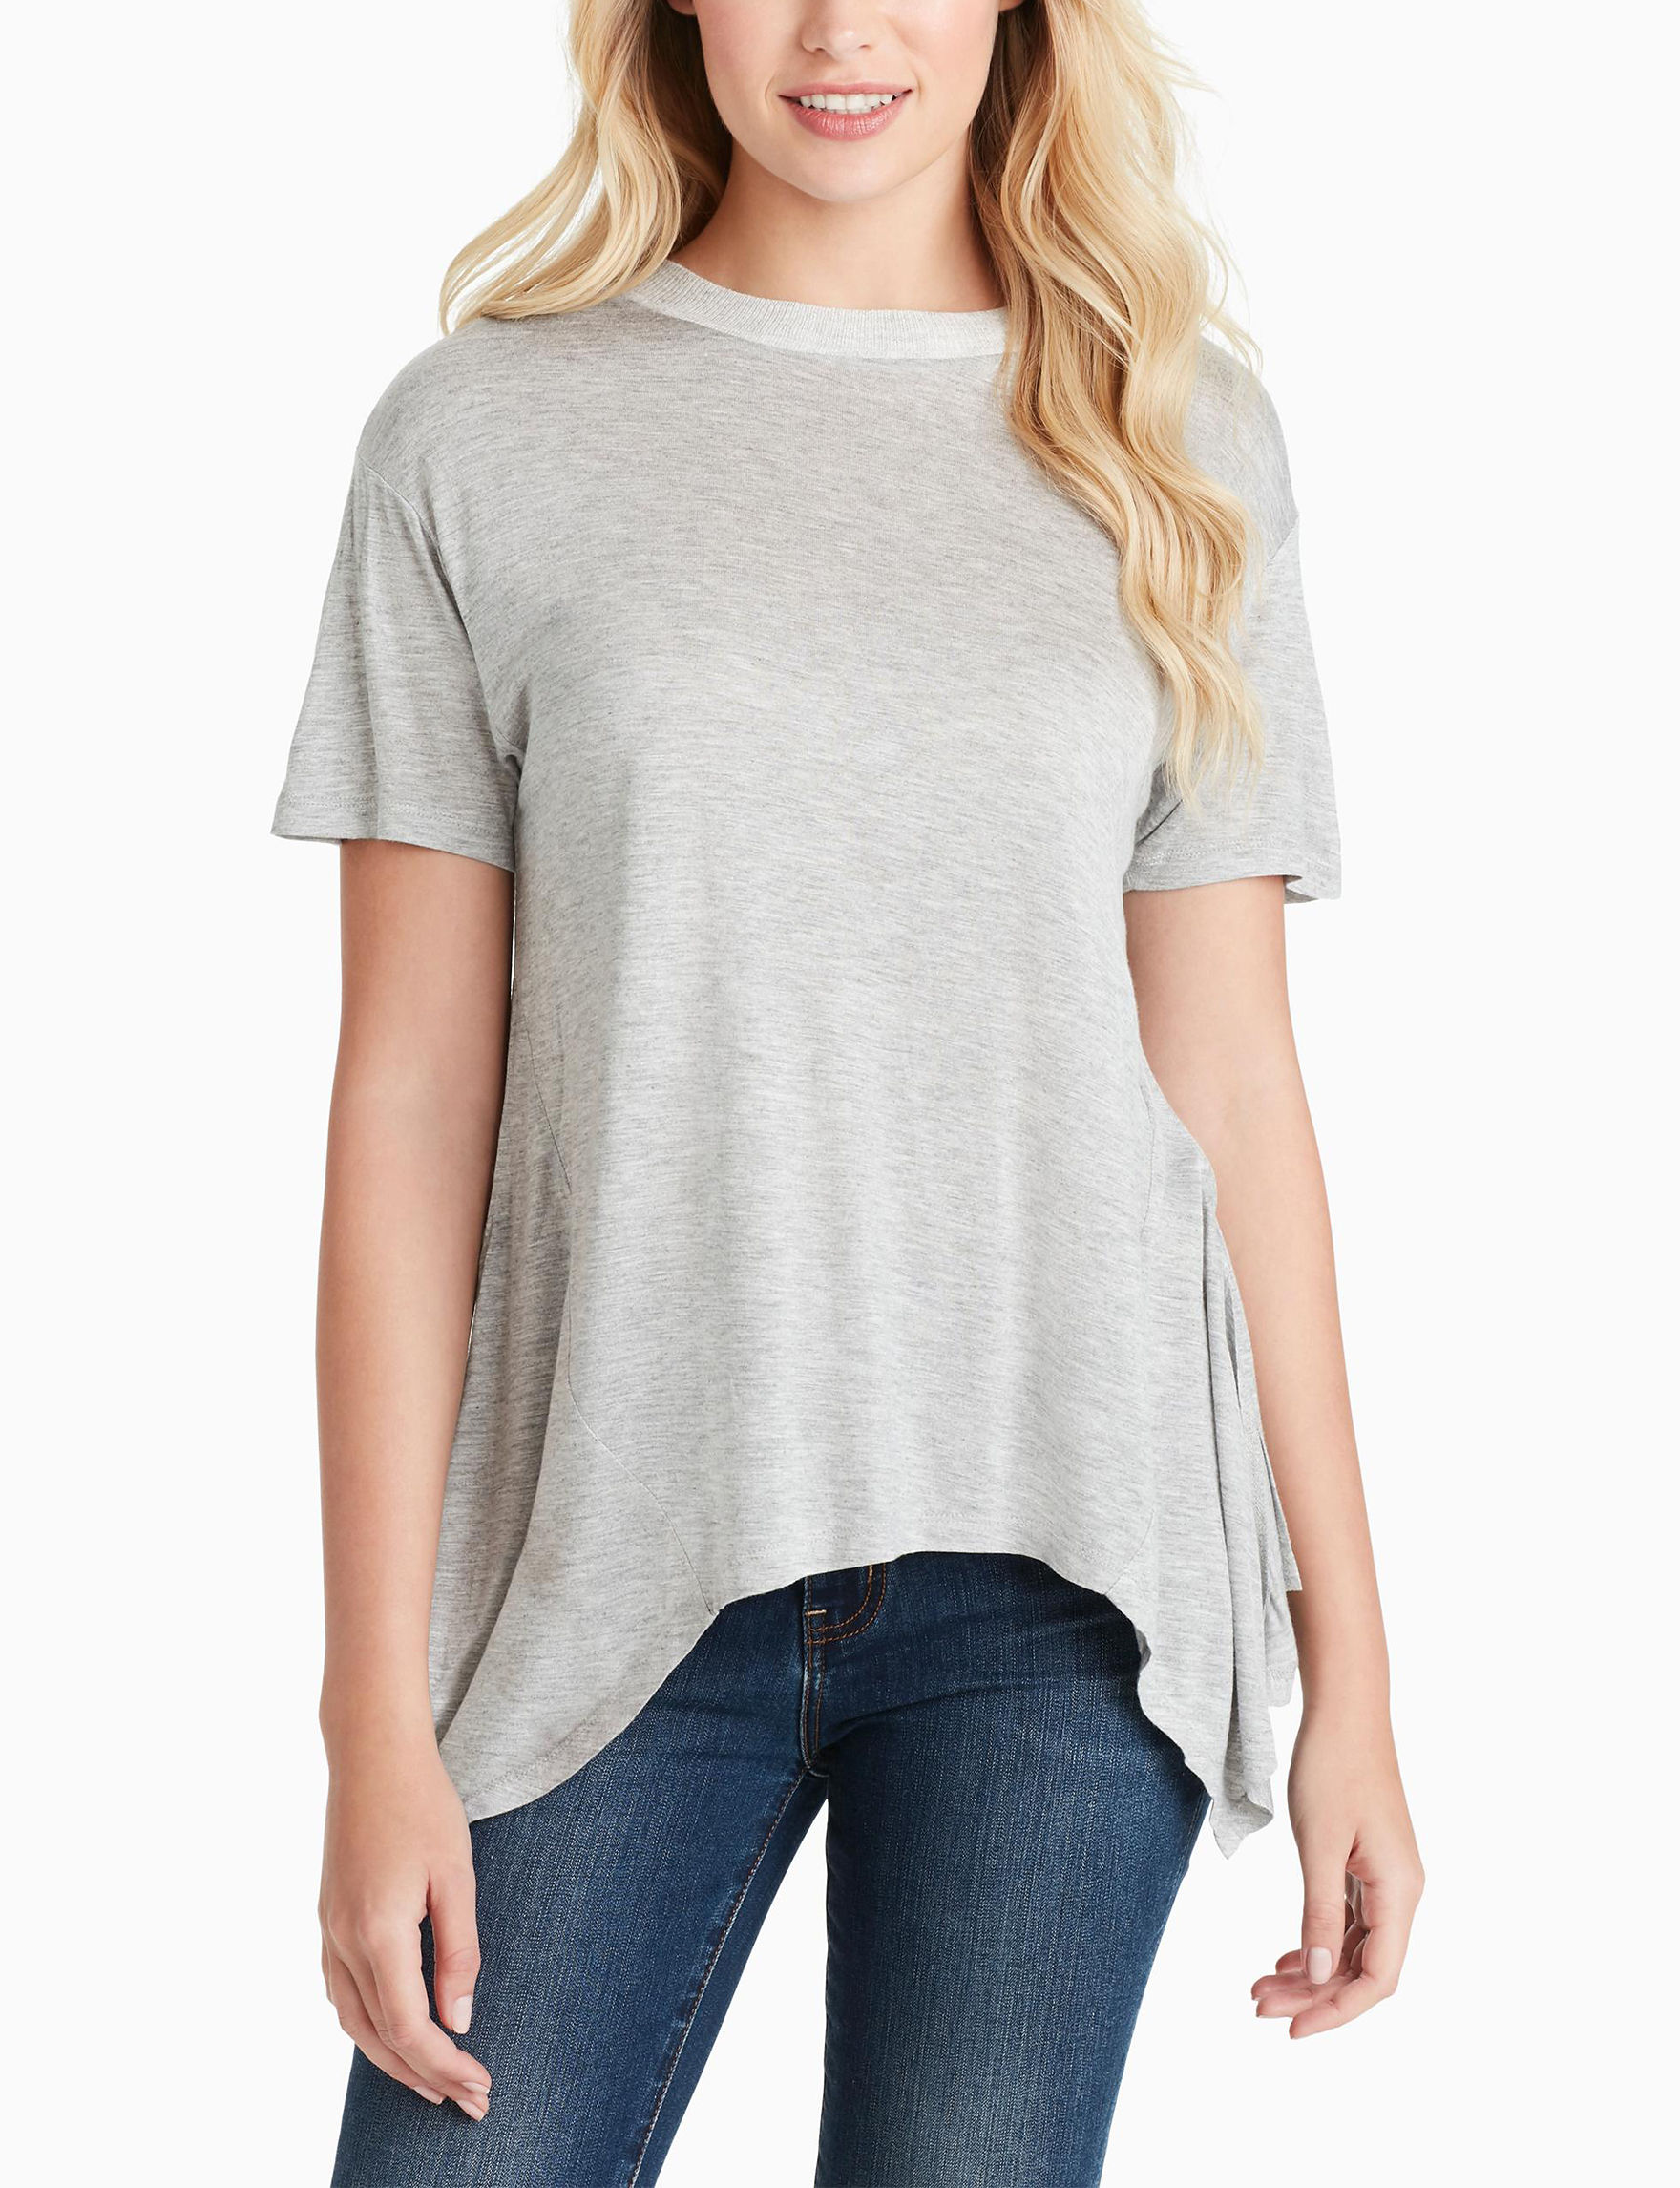 Jessica Simpson Light Grey Shirts & Blouses